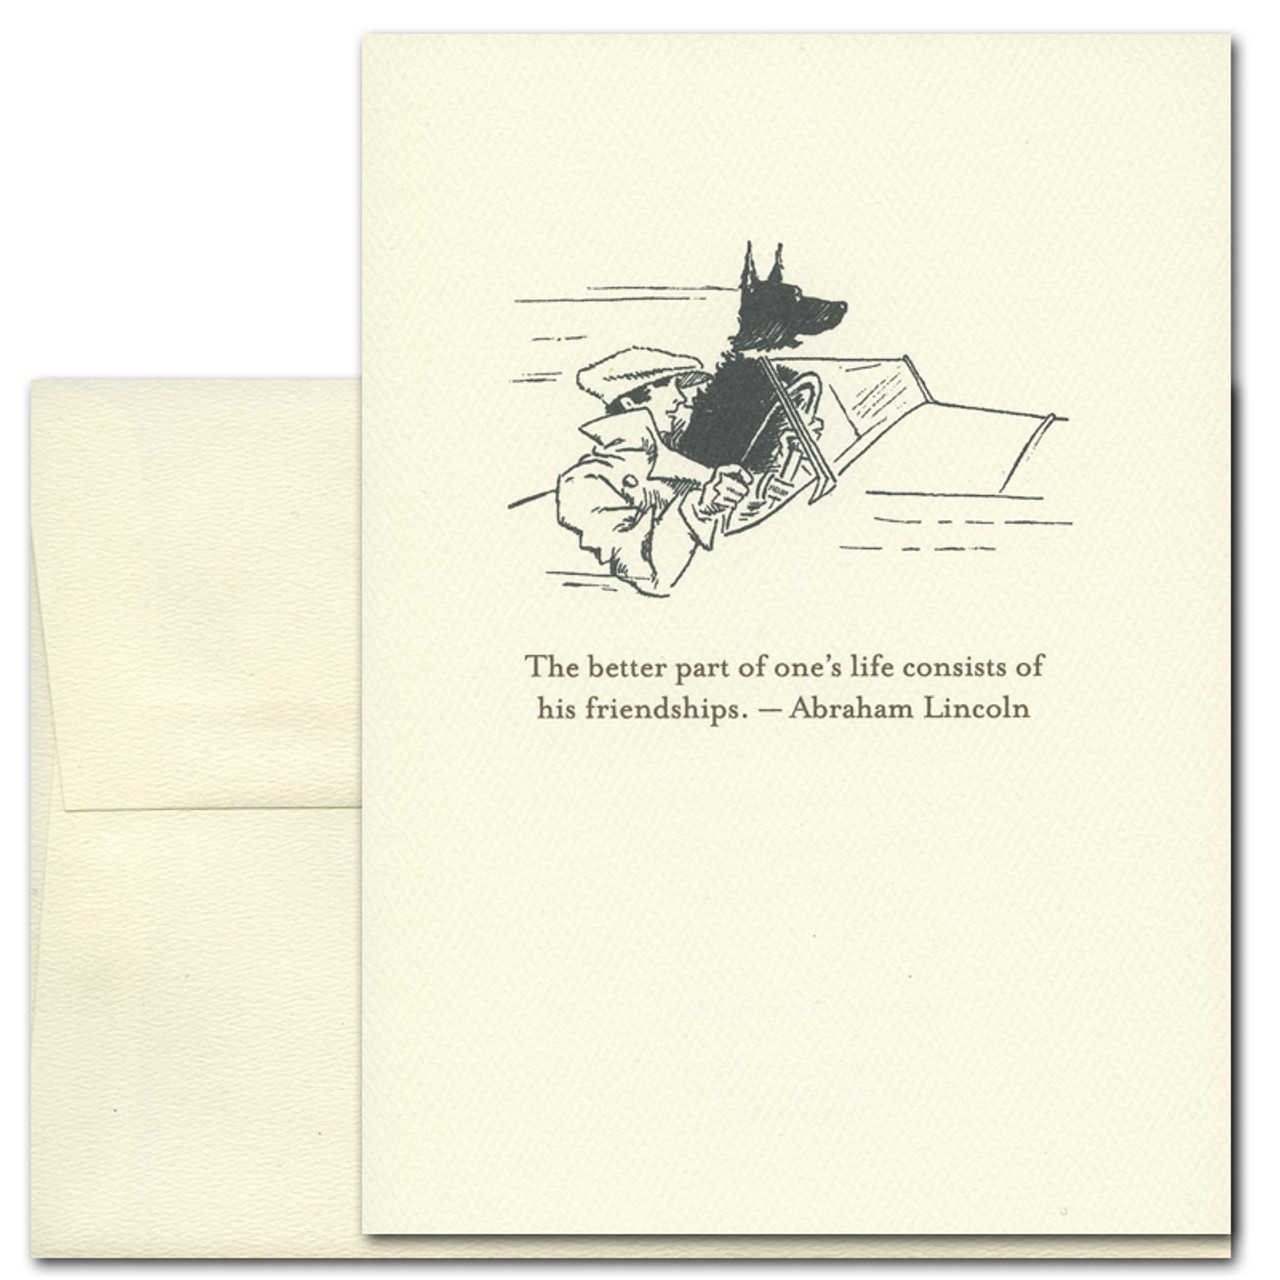 """Quotation Card """"Friendships: Lincoln"""" Cover shows vintage illustration of a man driving in a convertible with dog and a quote by Abraham Lincoln reading: """"The better part of one's life consists of his friendships."""""""